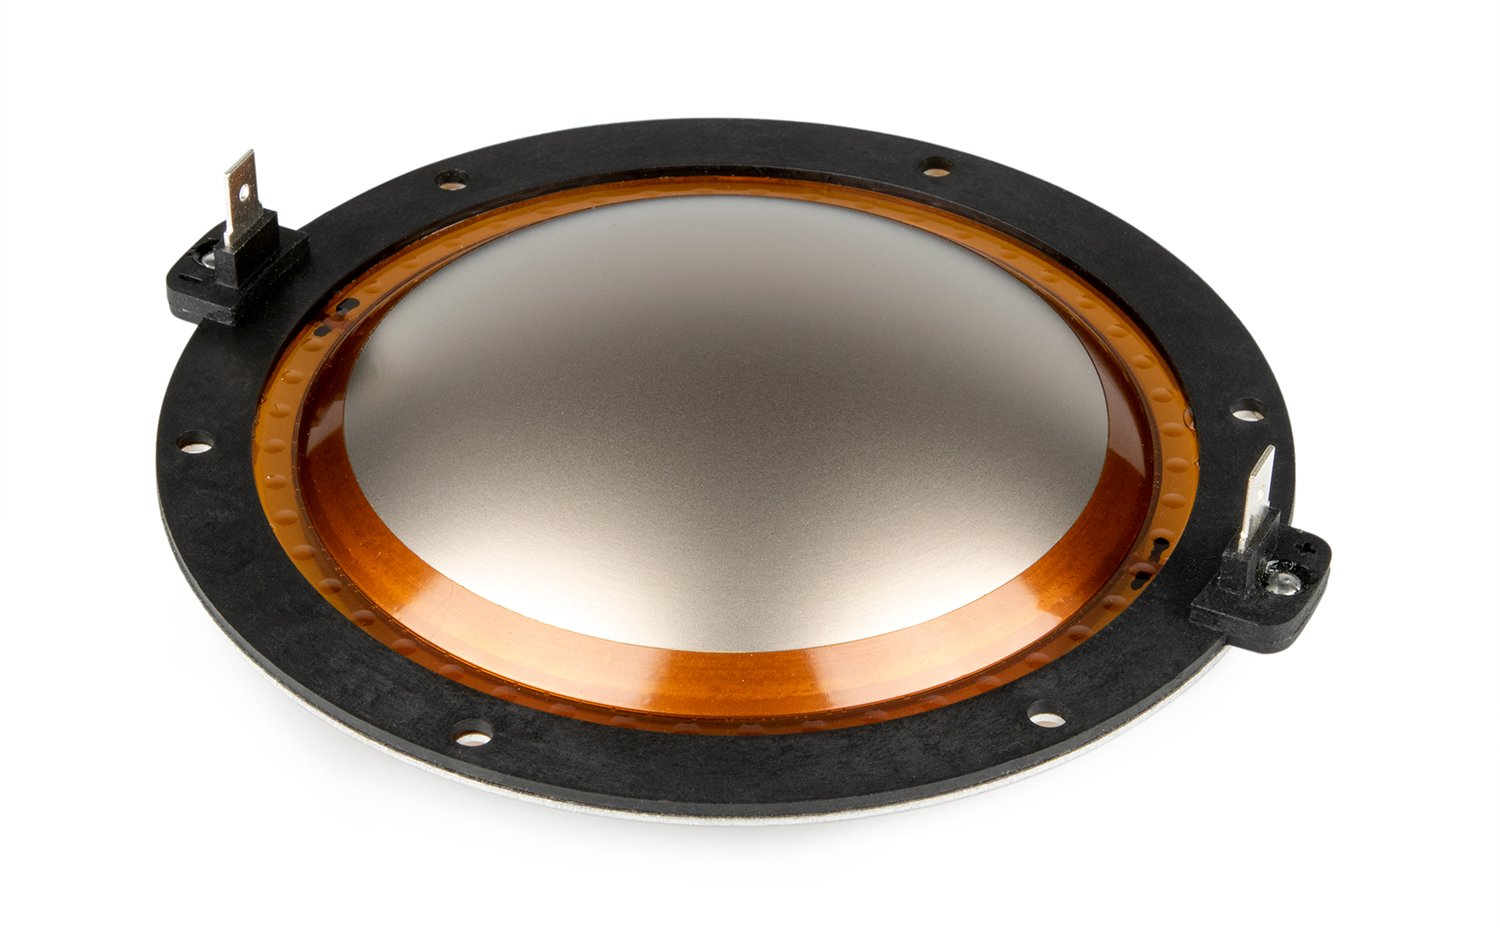 RCF RC-ND950-8 HF Diaphragm For ART-745A | Full Compass Systems